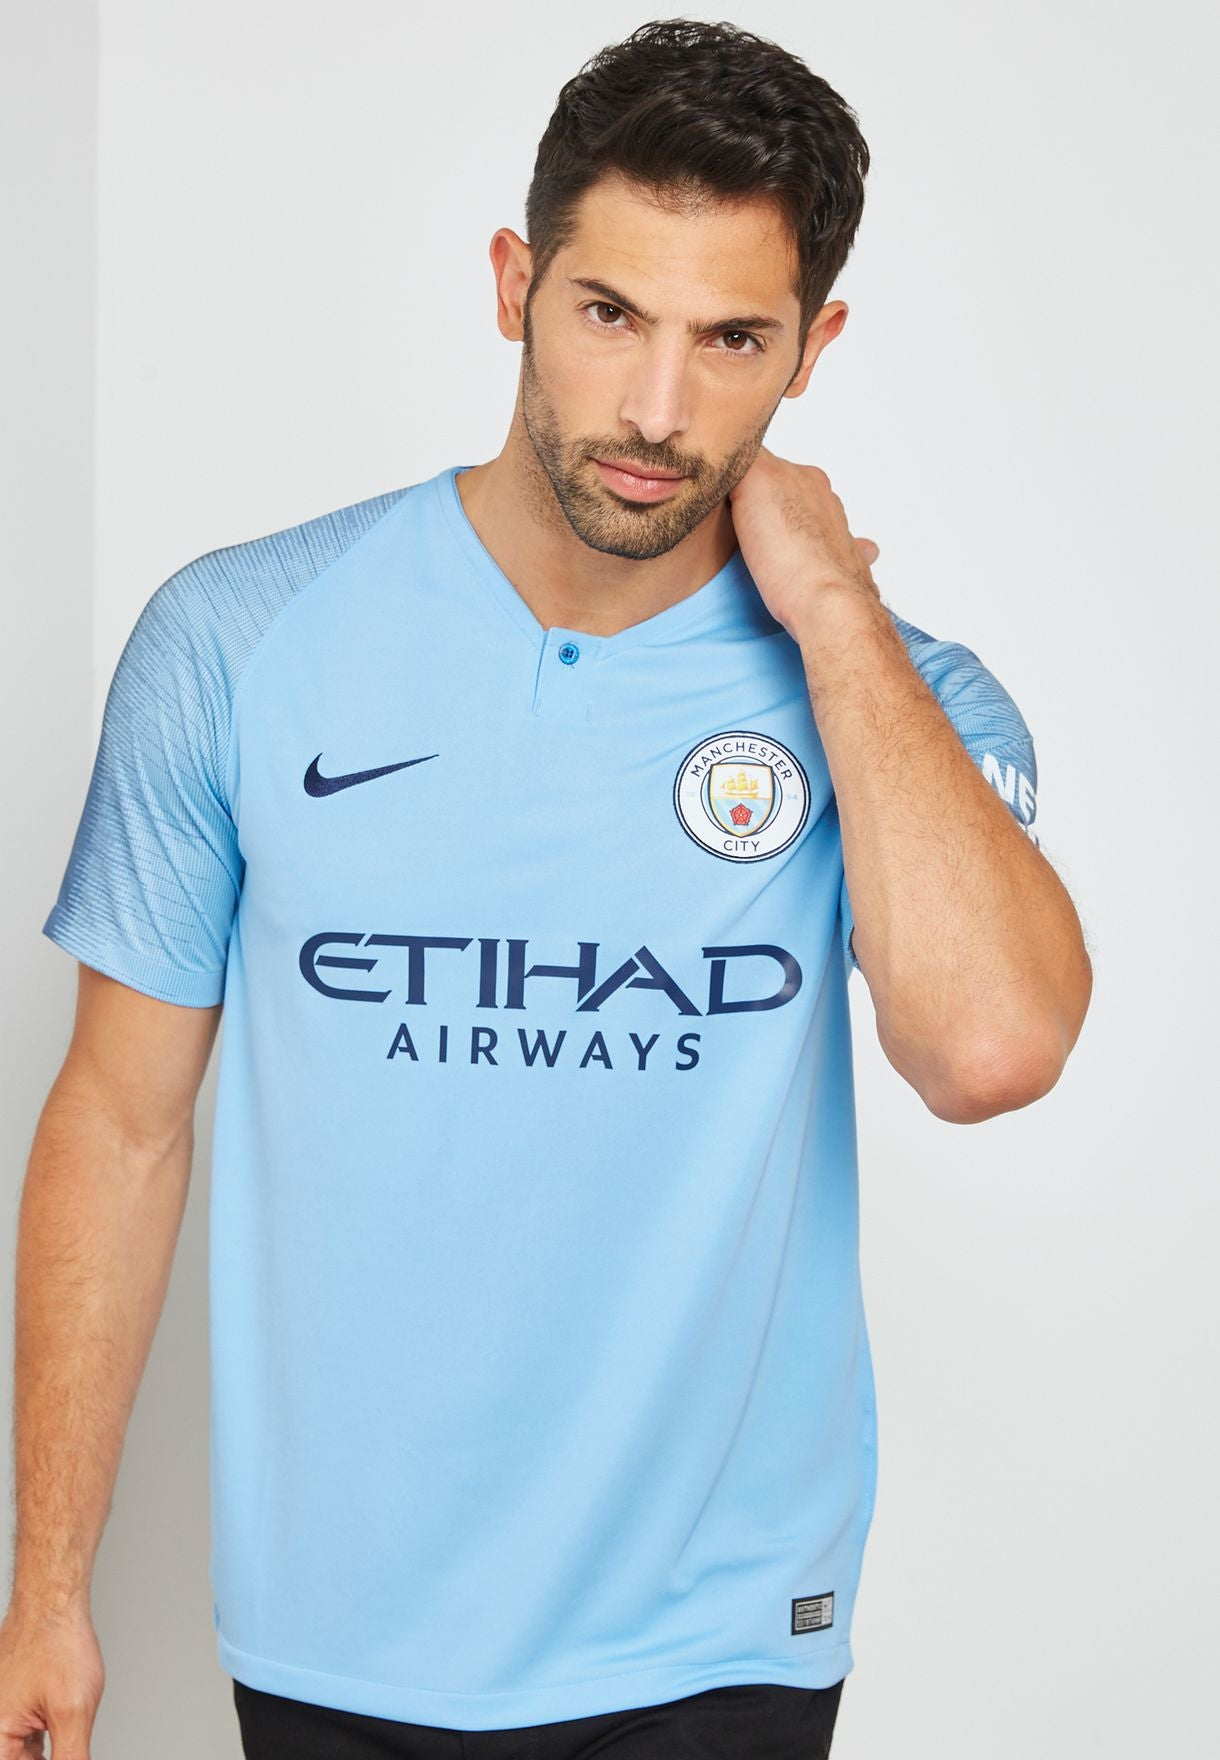 Men's Nike Breathe Manchester City 2018/19 Home Shirt.    894431-489